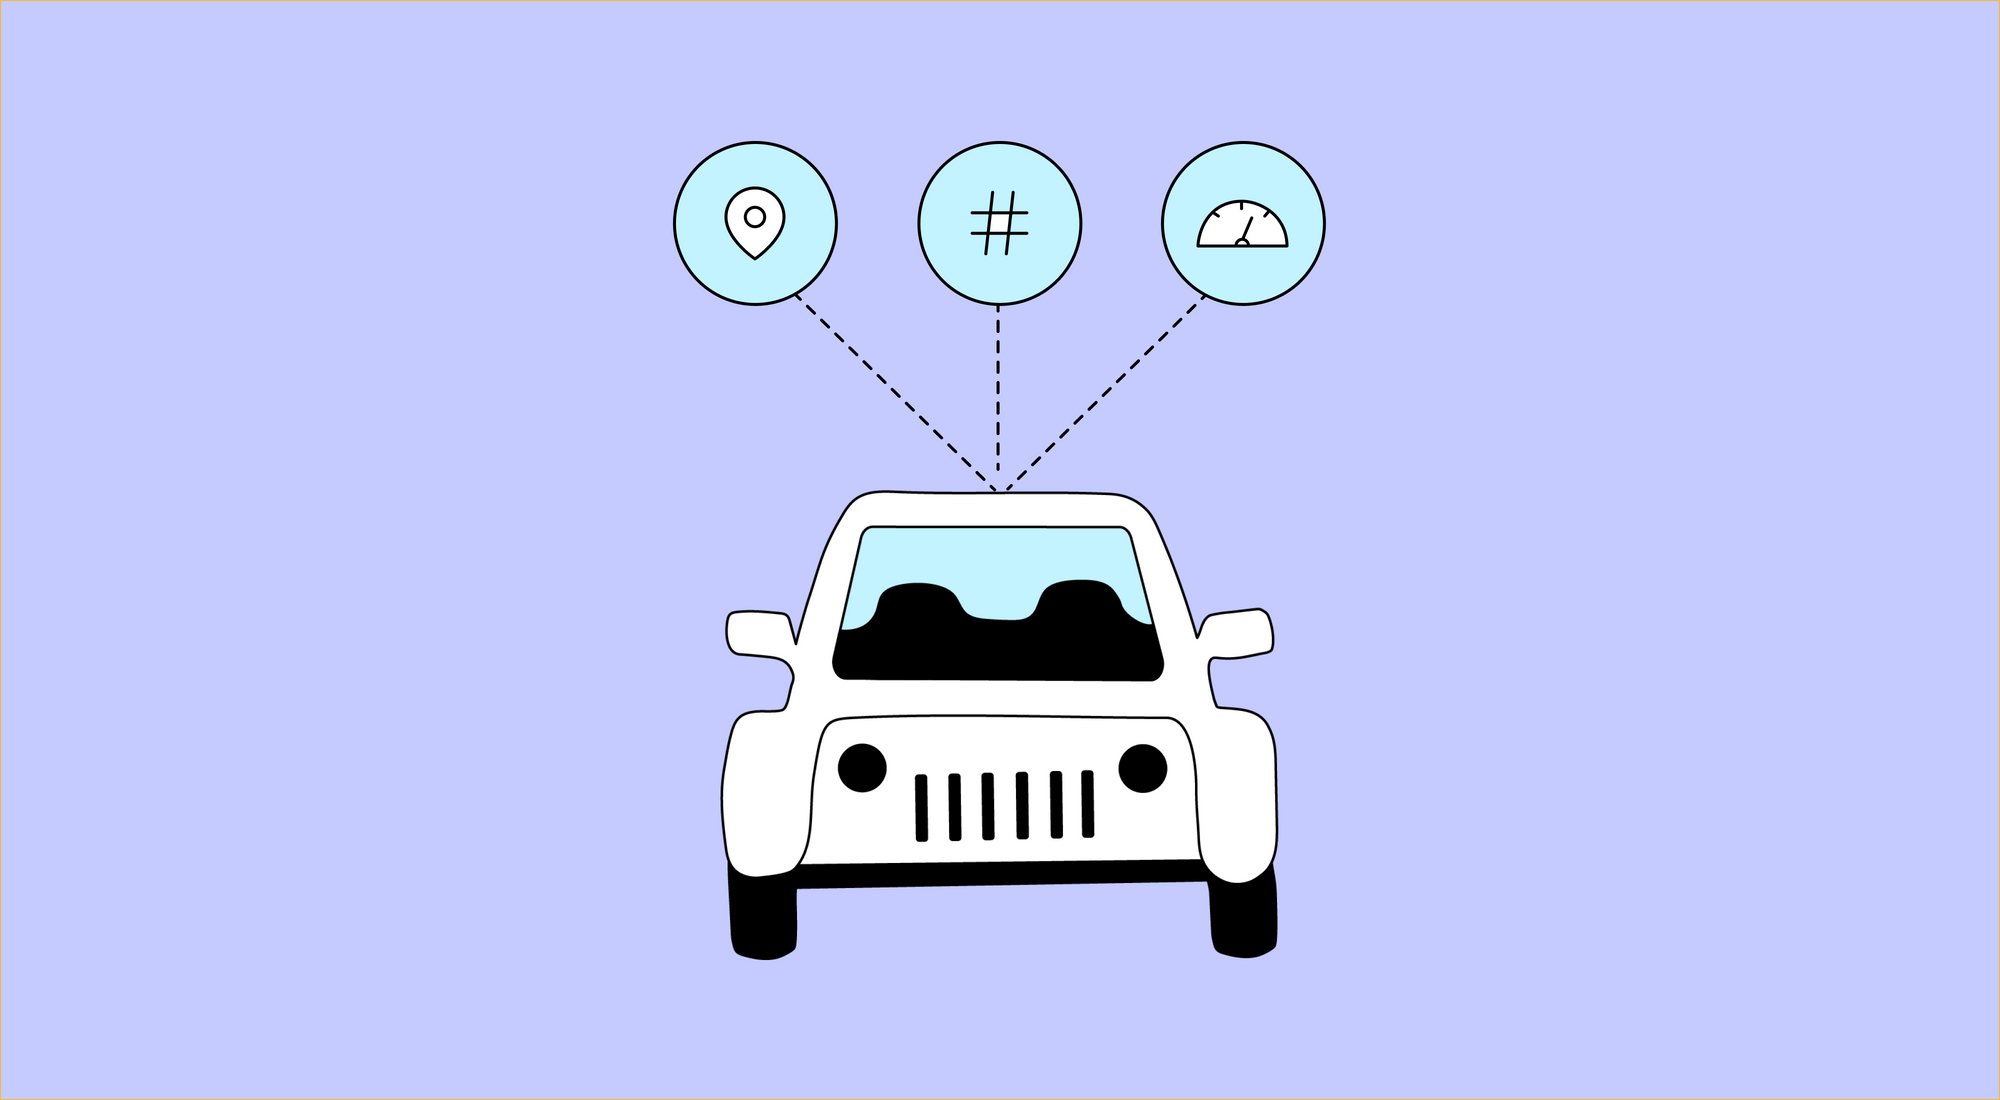 Illustration of a car with three circles connecting to it. Inside the circles there are an illustration of a pin, a pound sign, and an odometer reading.